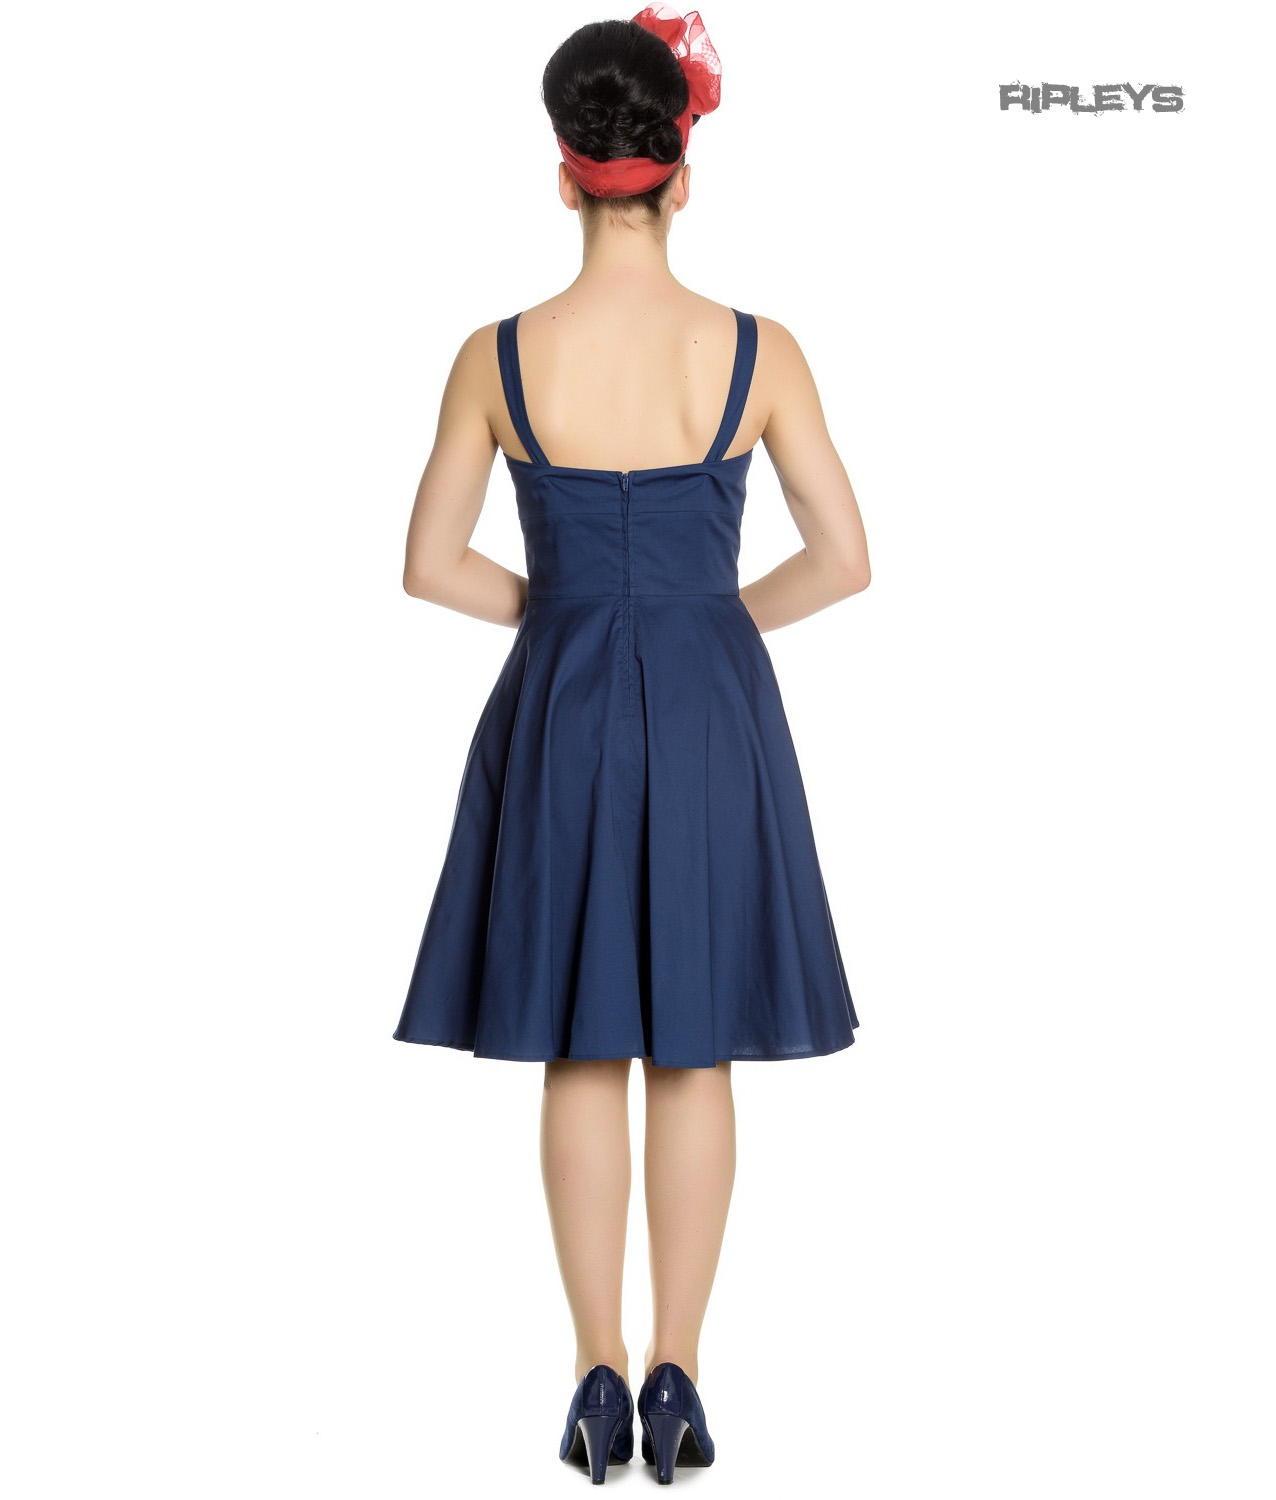 Hell-Bunny-Vintage-50s-Pin-Up-Dress-Navy-Blue-SELA-Nautical-Anchors-All-Sizes thumbnail 4